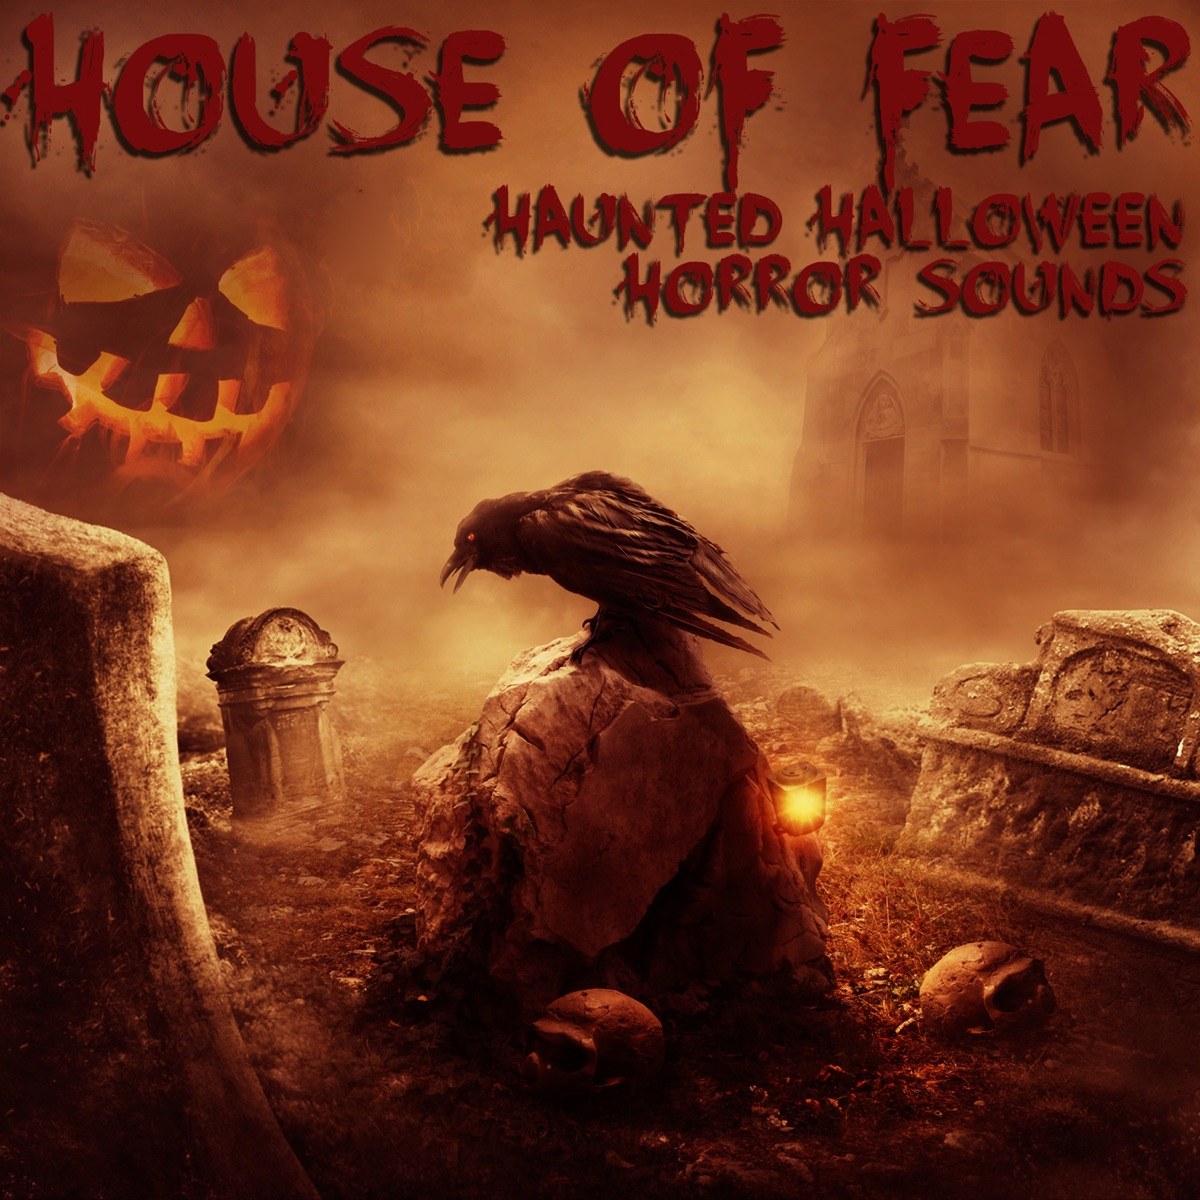 House of Fear: Haunted Halloween Horror Sounds Album Cover by